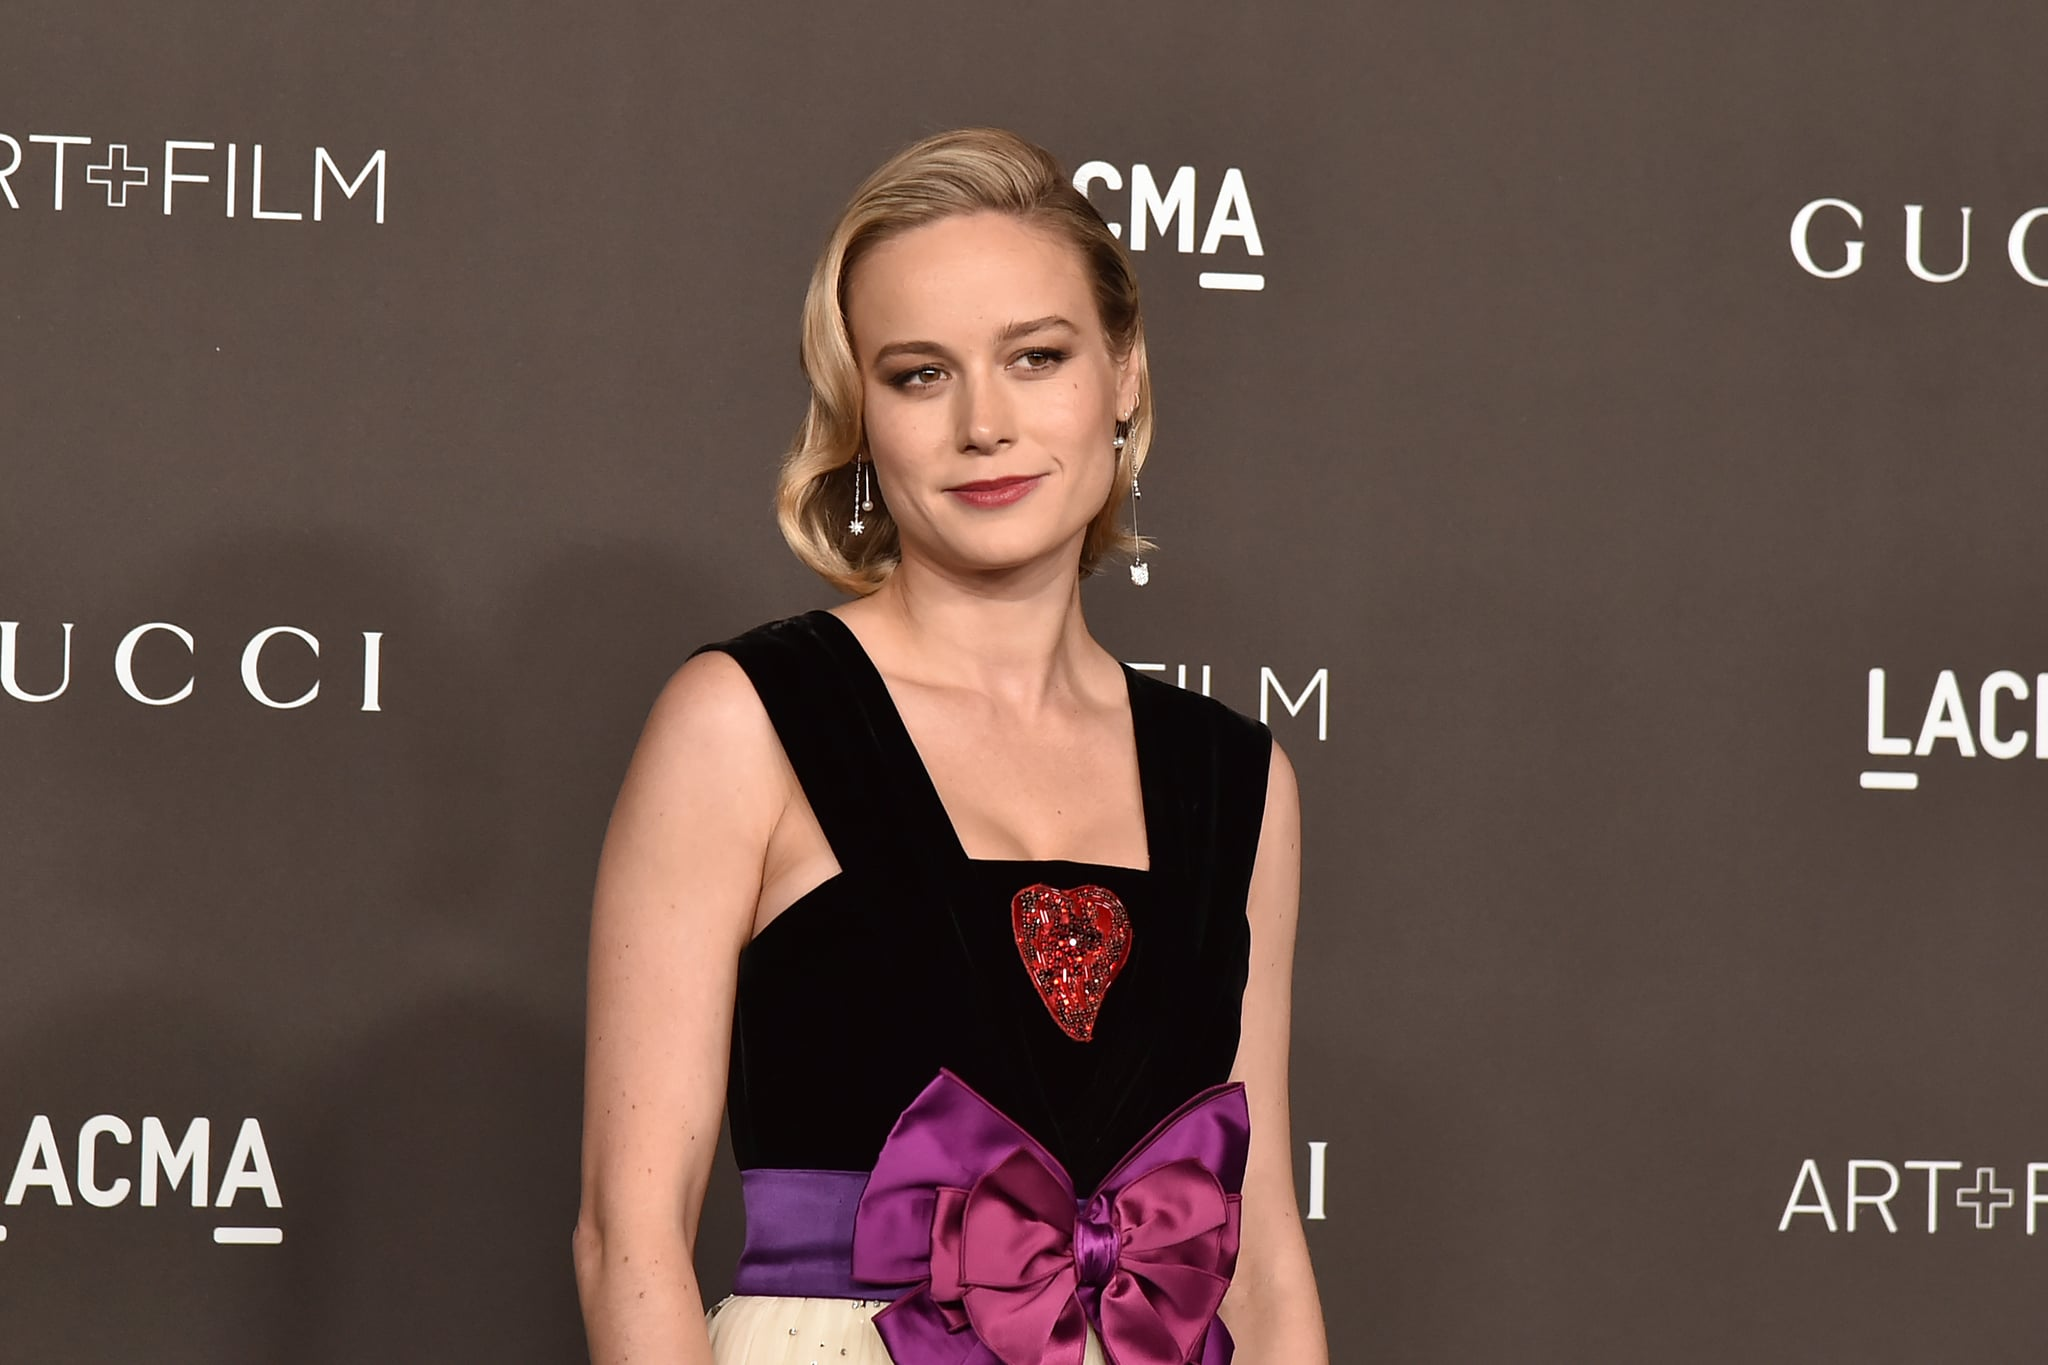 LOS ANGELES, CALIFORNIA - NOVEMBER 02: Brie Larson attends the 2019 LACMA Art + Film Gala  at LACMA on November 02, 2019 in Los Angeles, California. (Photo by David Crotty/Patrick McMullan via Getty Images)